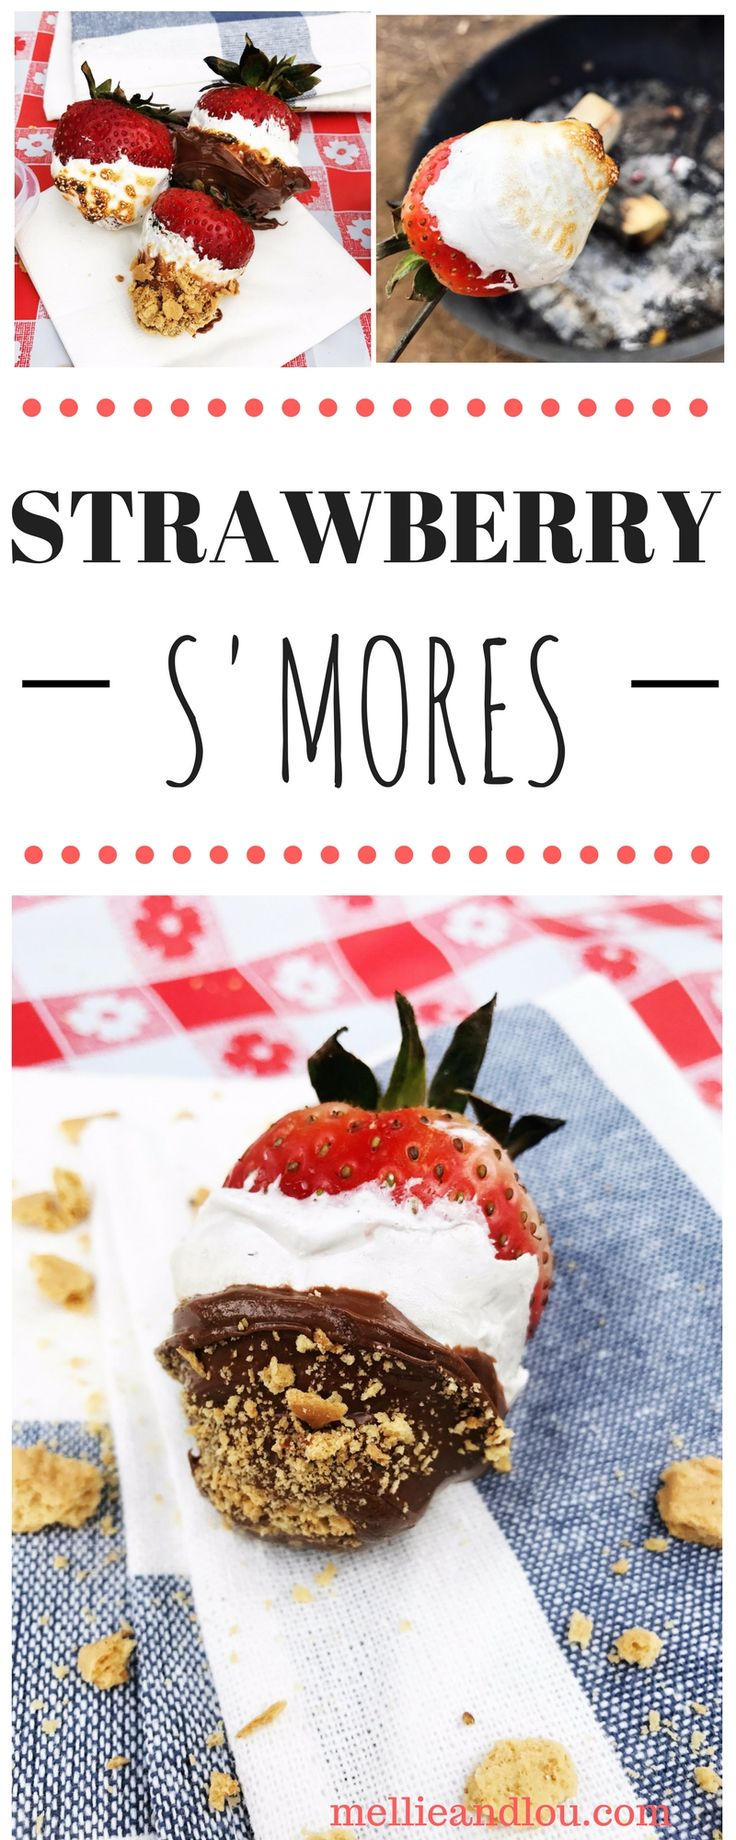 S'mores are a thing of the past! These delicious, quick, easy, summer treats are a must-have dessert for your next camping trip!camp, camping, desserts, easy, fluff, fourth of July, girls camp, graham crackers, jet puffed, marshmallow, memorial day, Nutella, roasting, s'mores. quick, scouts, Strawberry, summer, treats, 4th of July, Memorial Day, Girl's Camp,